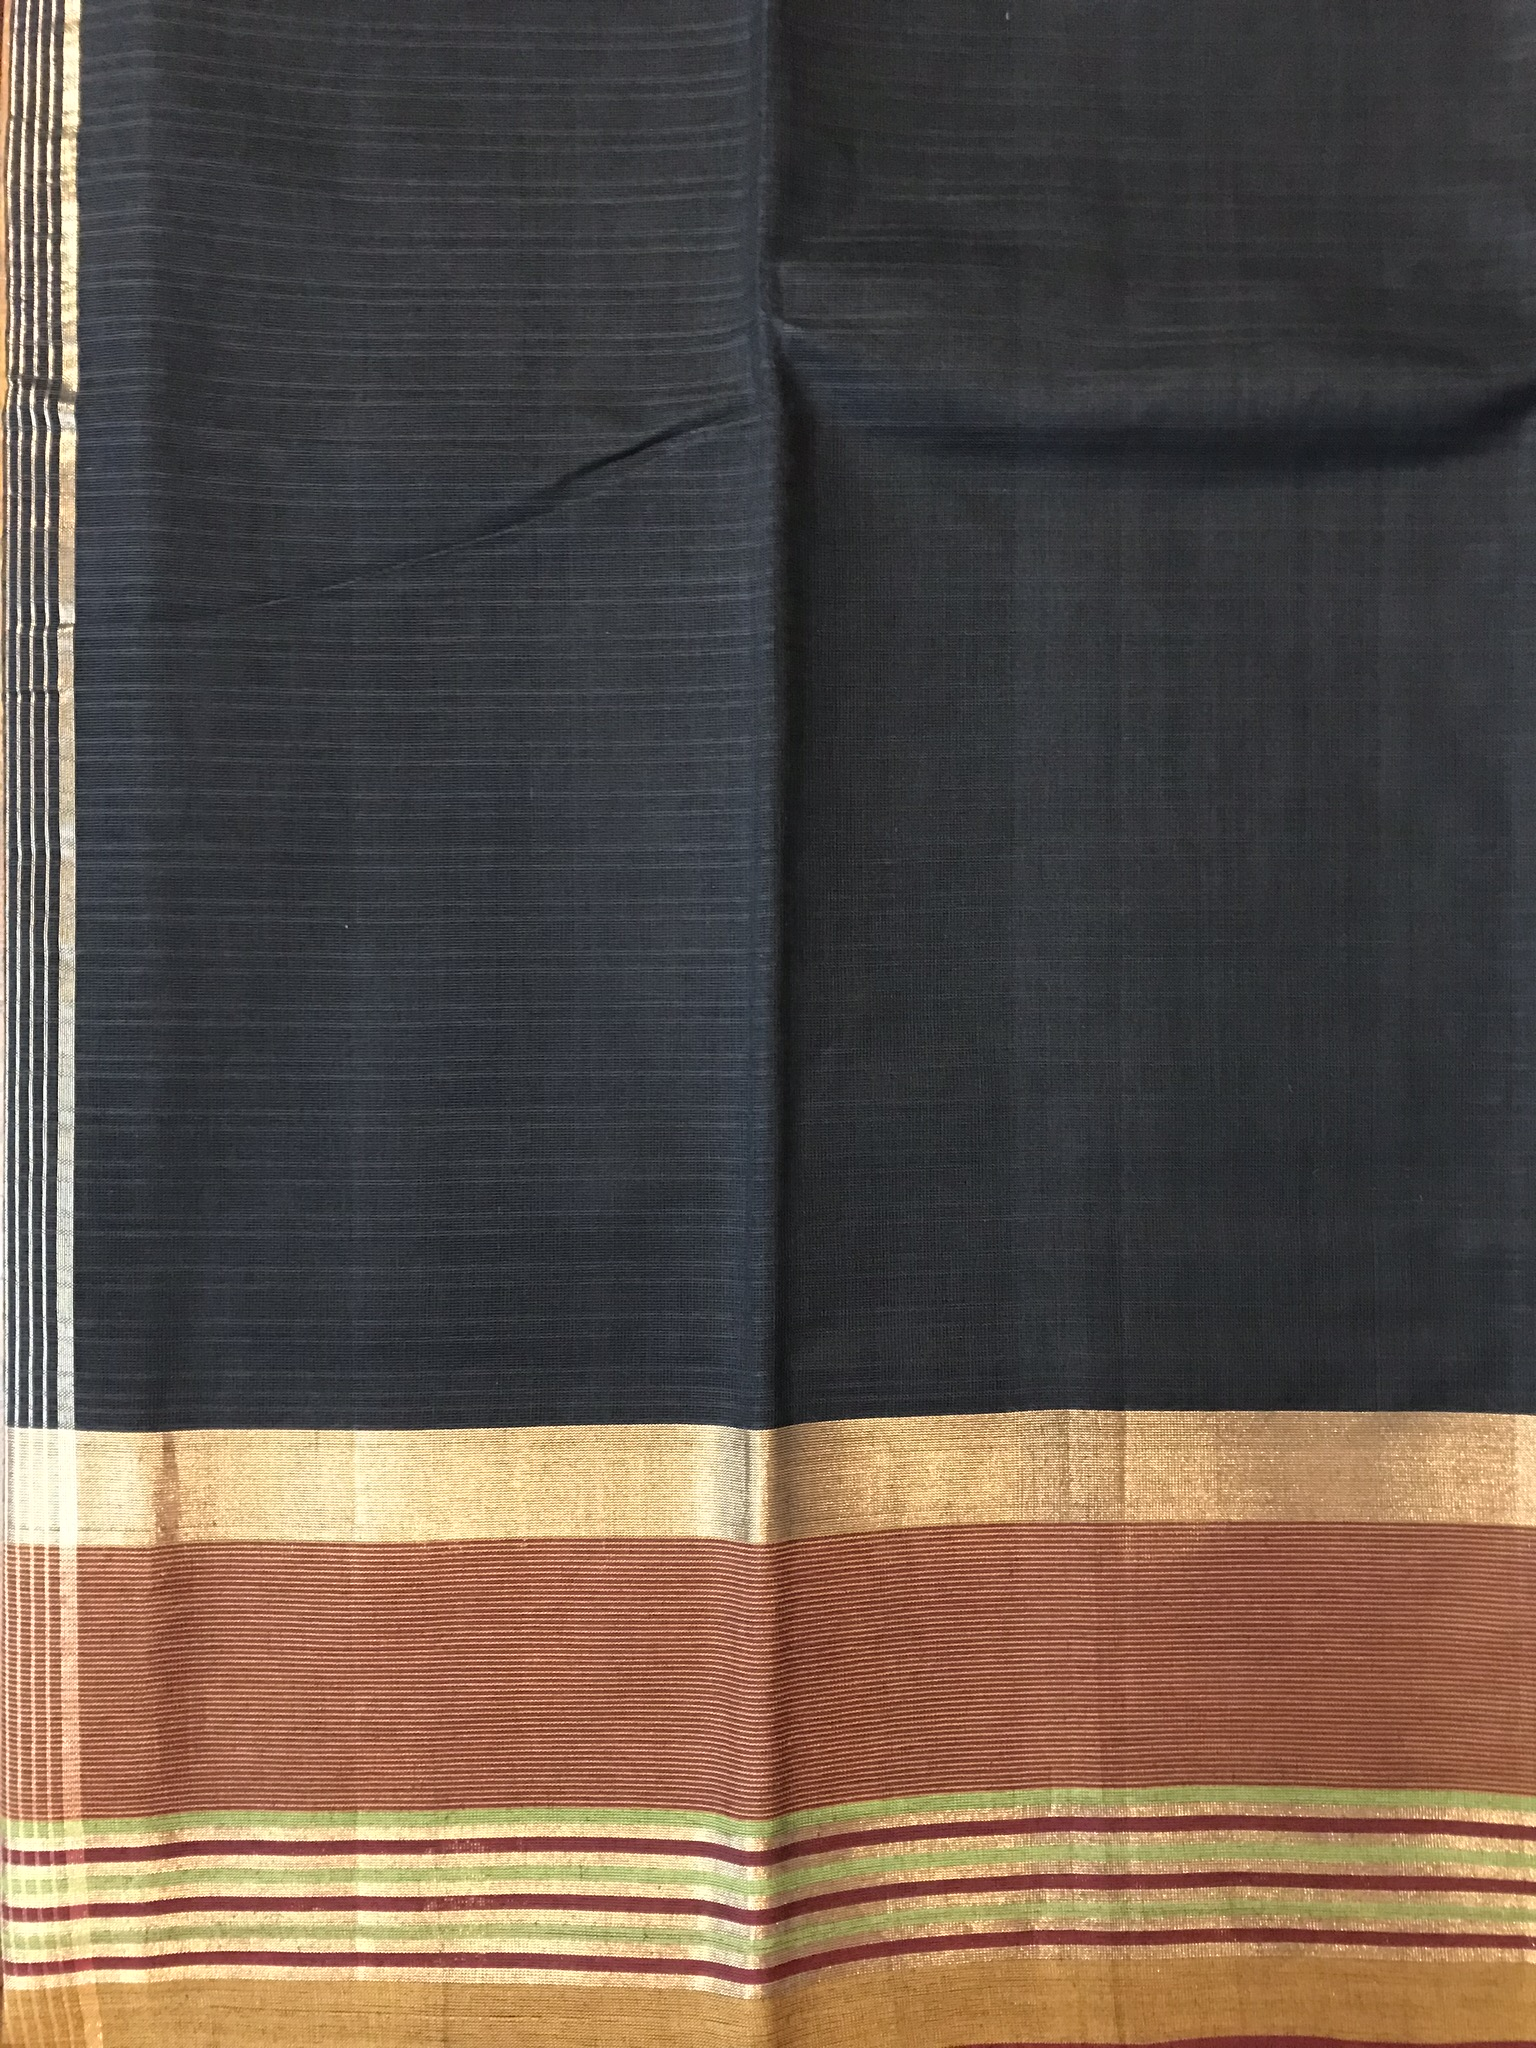 Black and Maroon Kanchi Cotton Saree (INDI-1010)